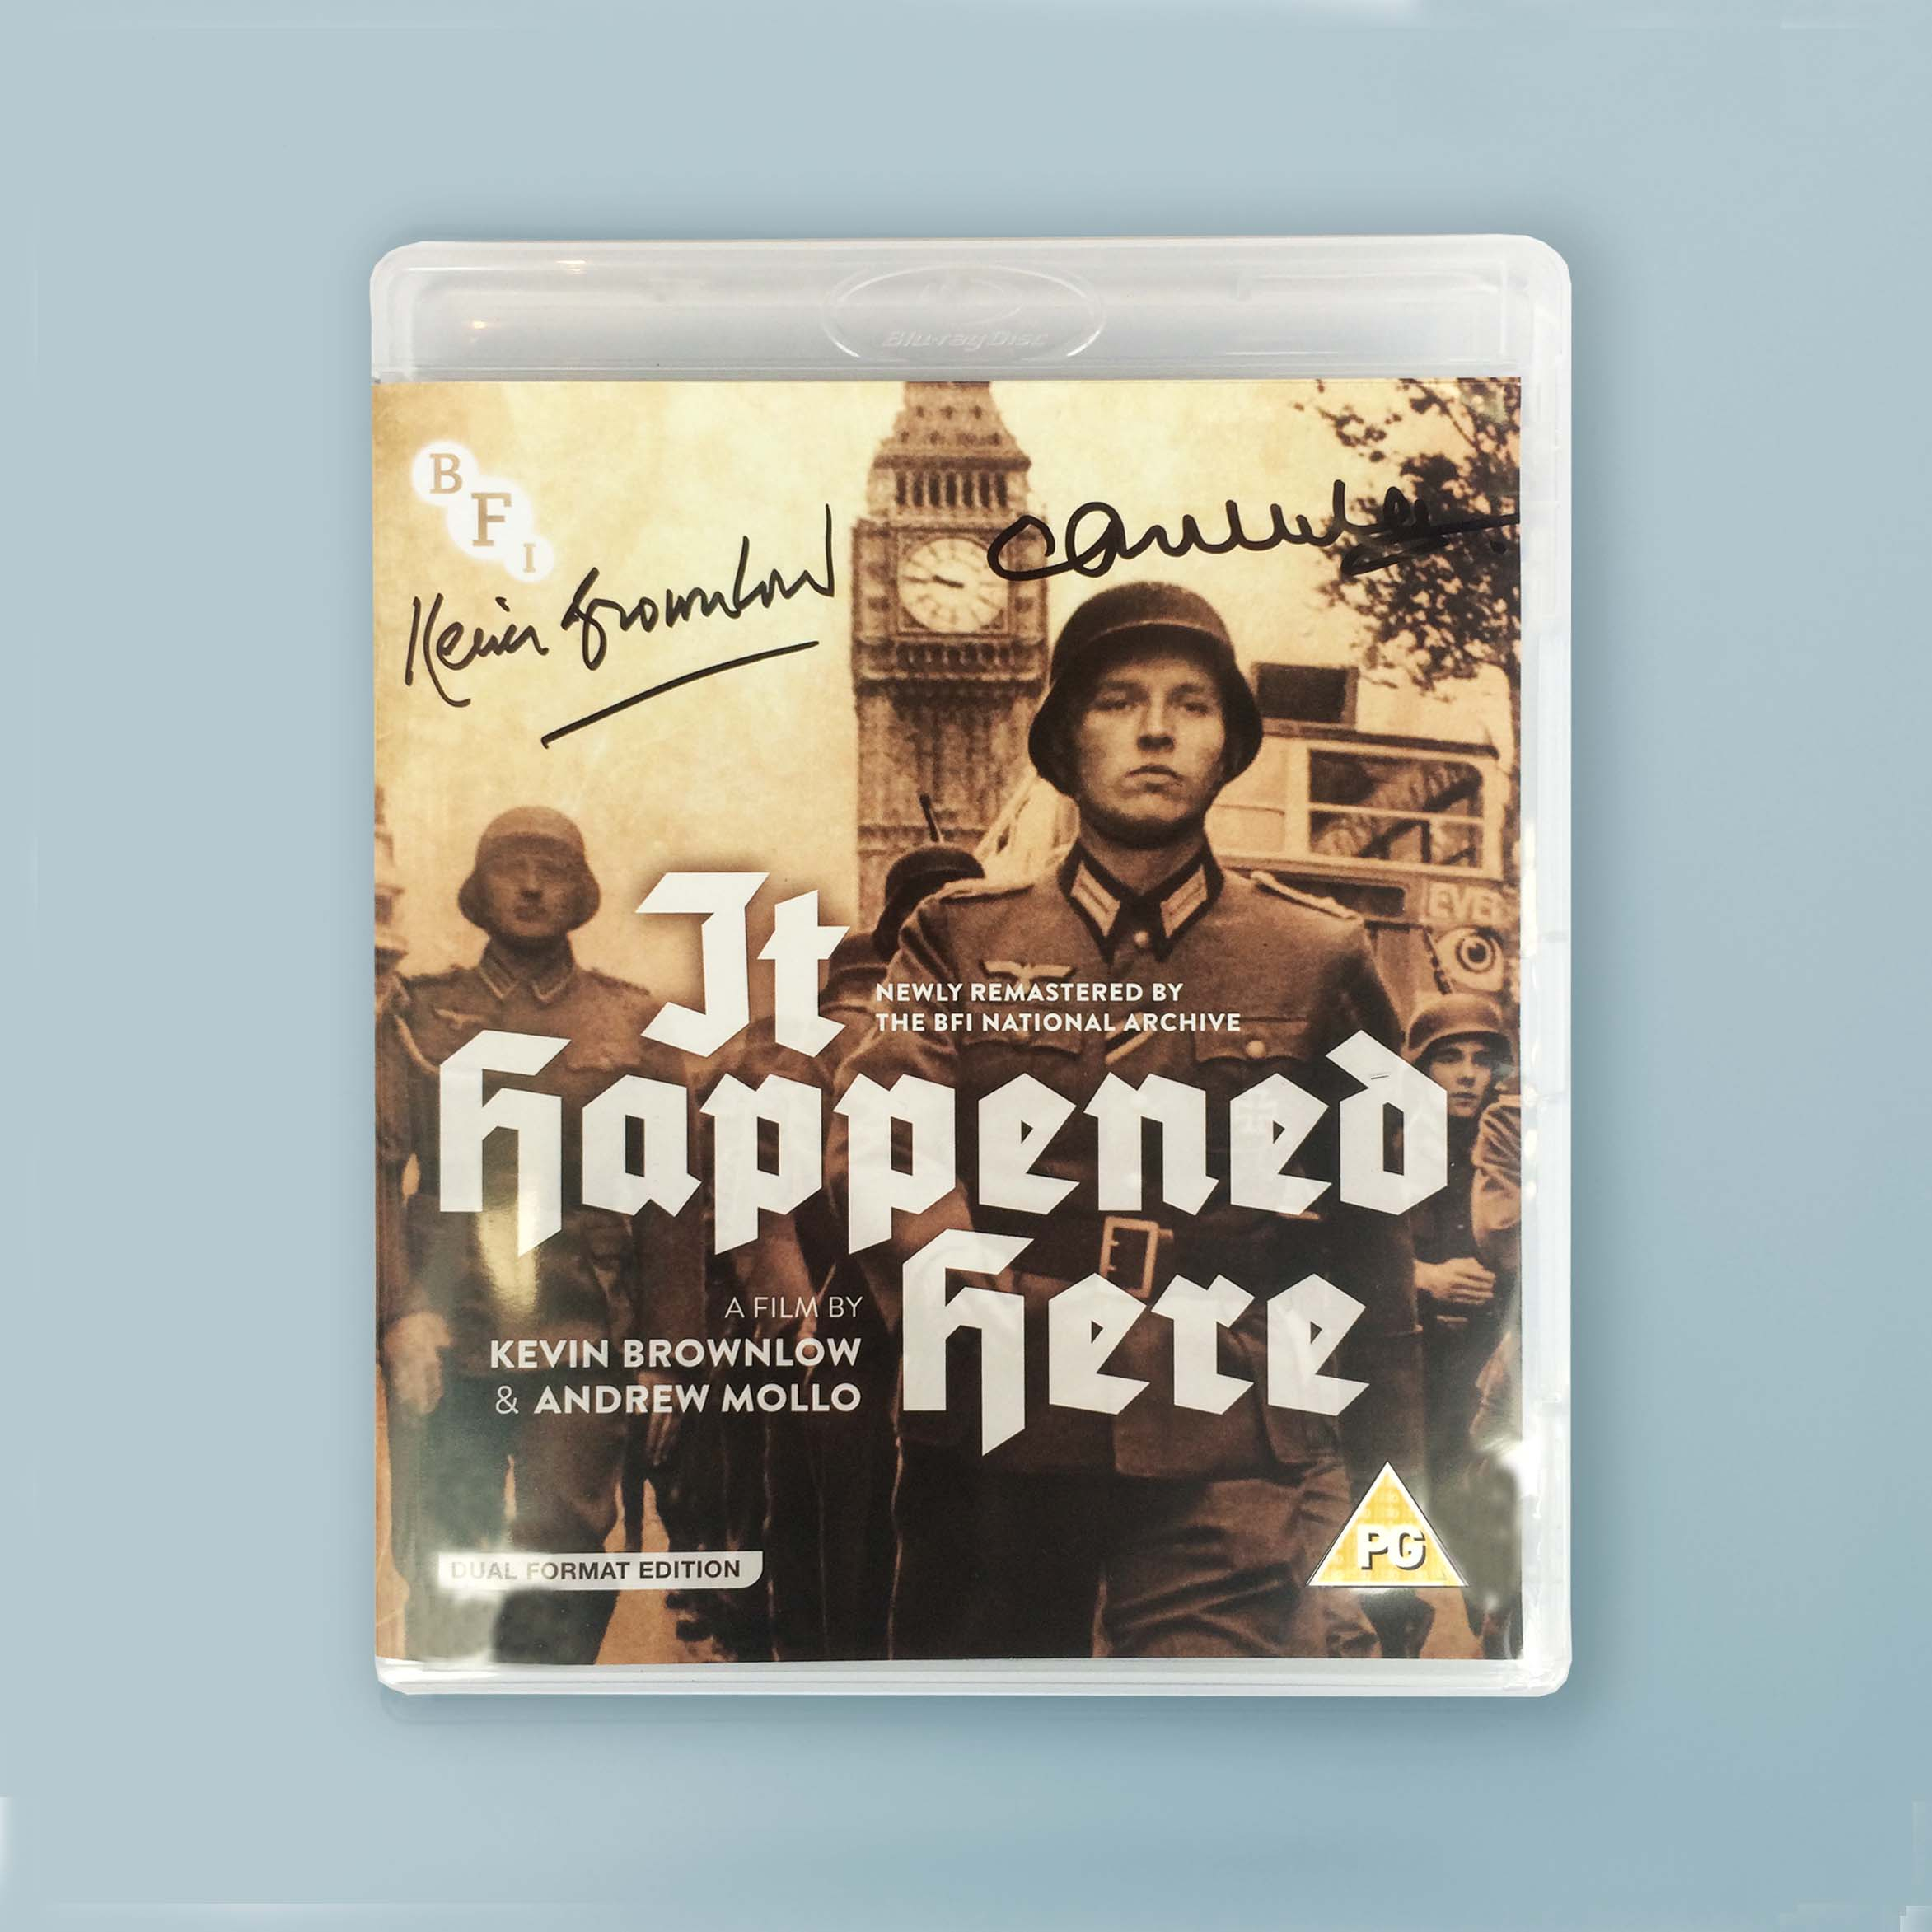 Buy It Happened Here (SIGNED COPY) (Dual Format Edition)